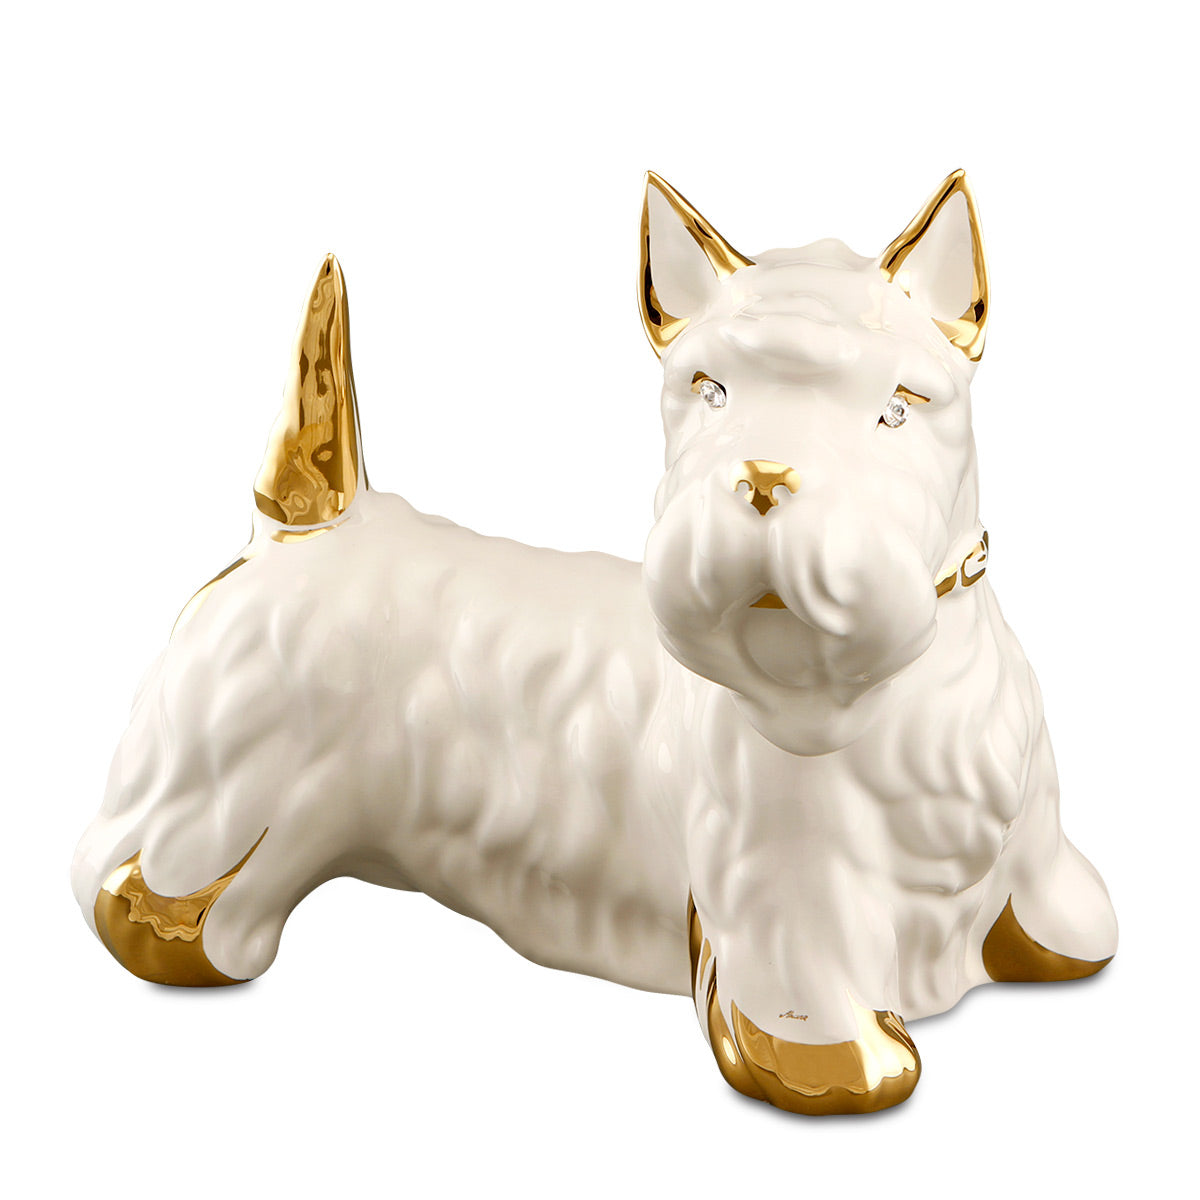 Ceramic scottish terrier statue